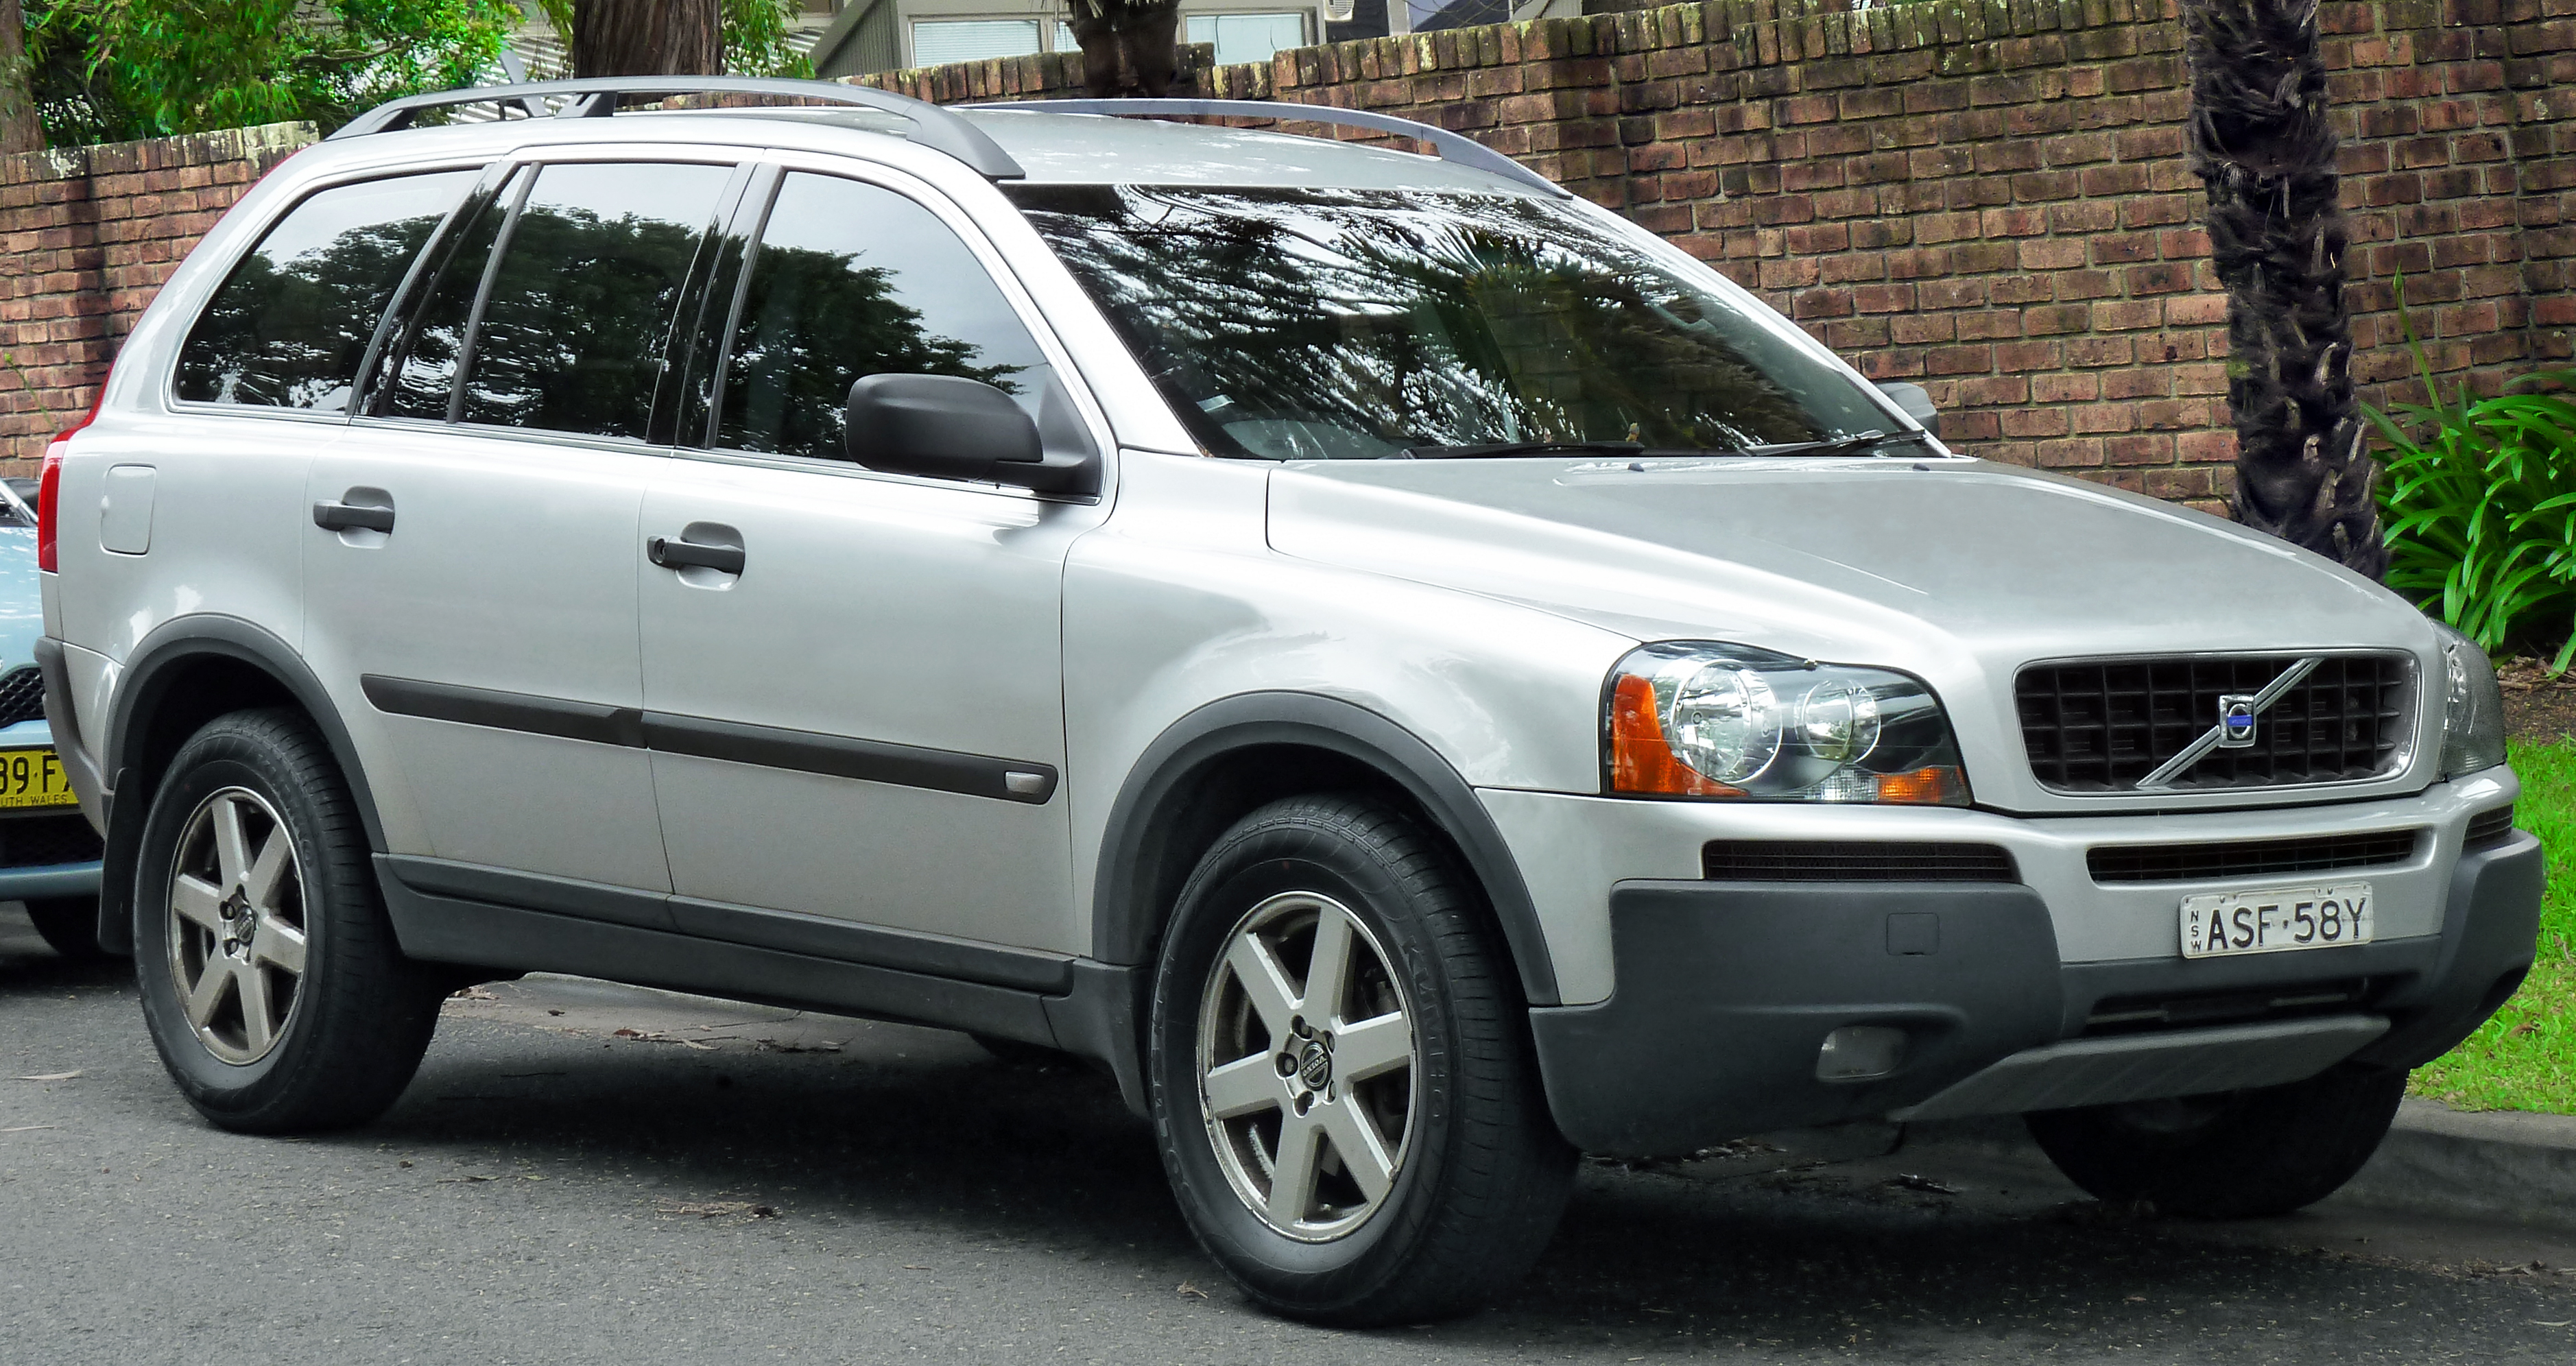 2003 Volvo Xc90 Photos, Informations, Articles - BestCarMag.com